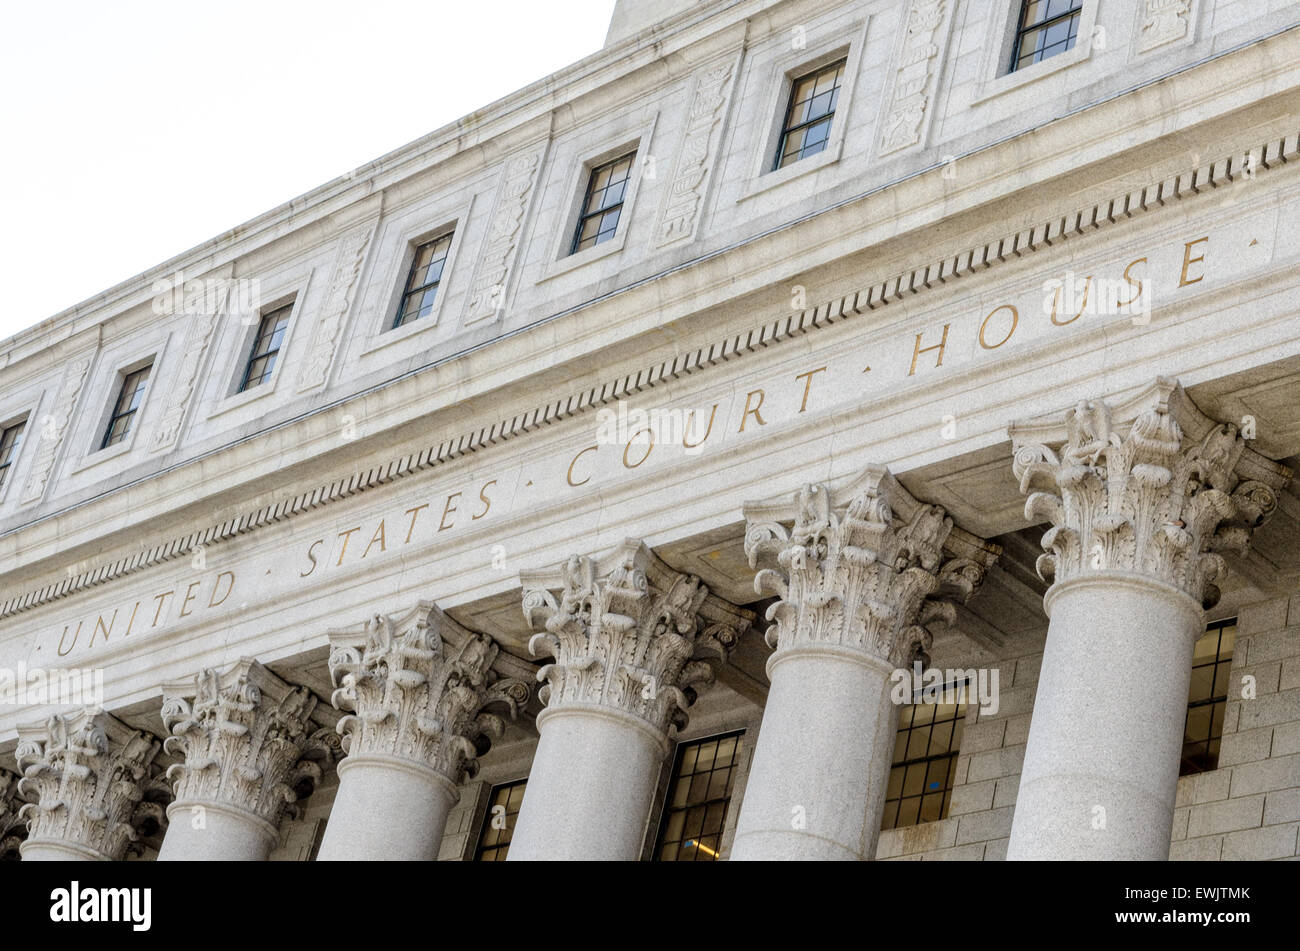 United States Court House in Lower Manhattan, New York city - Stock Image